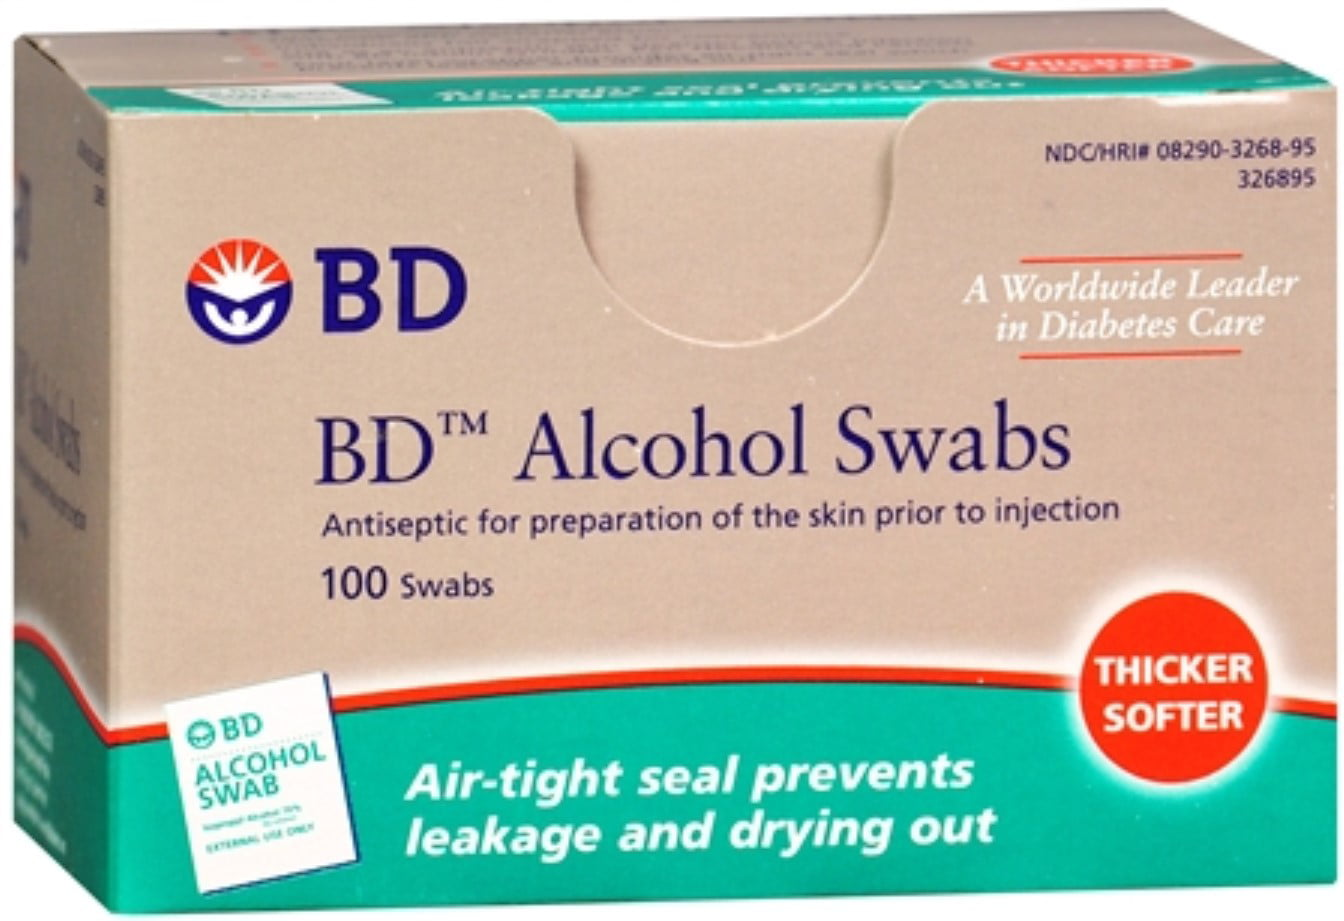 BD Alcohol Swabs 100 Each (Pack of 2) by